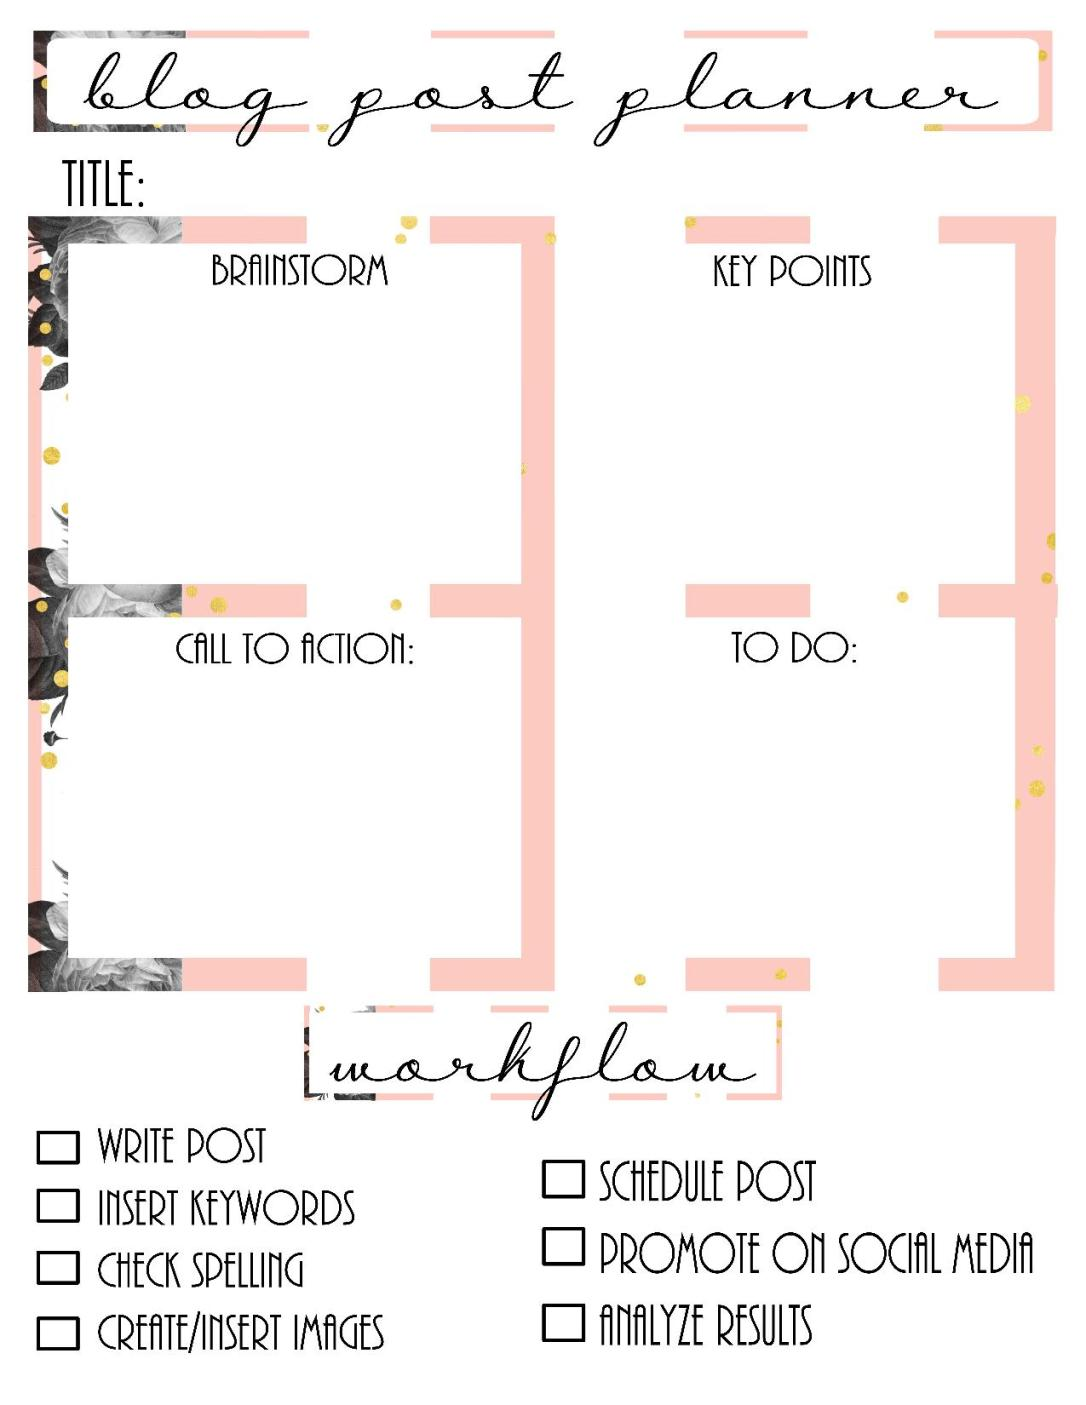 Blog Planner 1 PIC